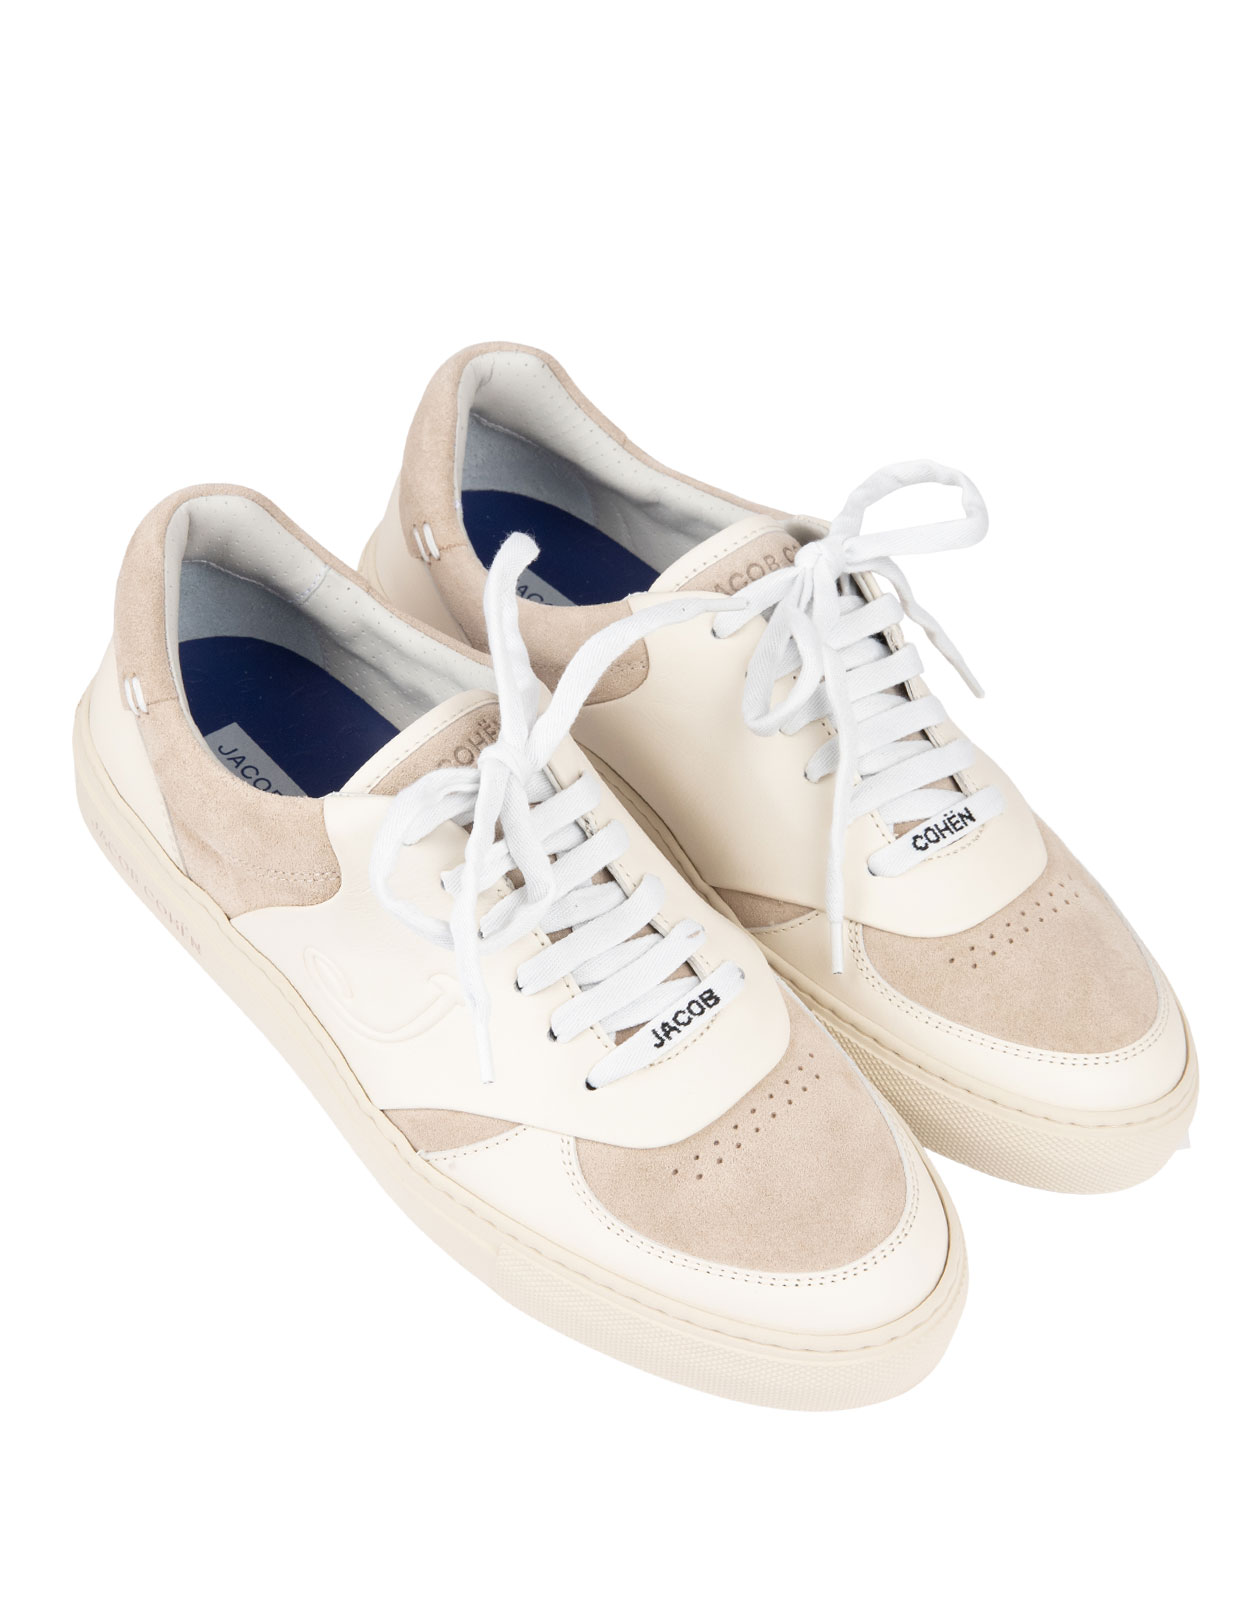 Dreamer Sneaker Suede Leather Offwhite/Taupe